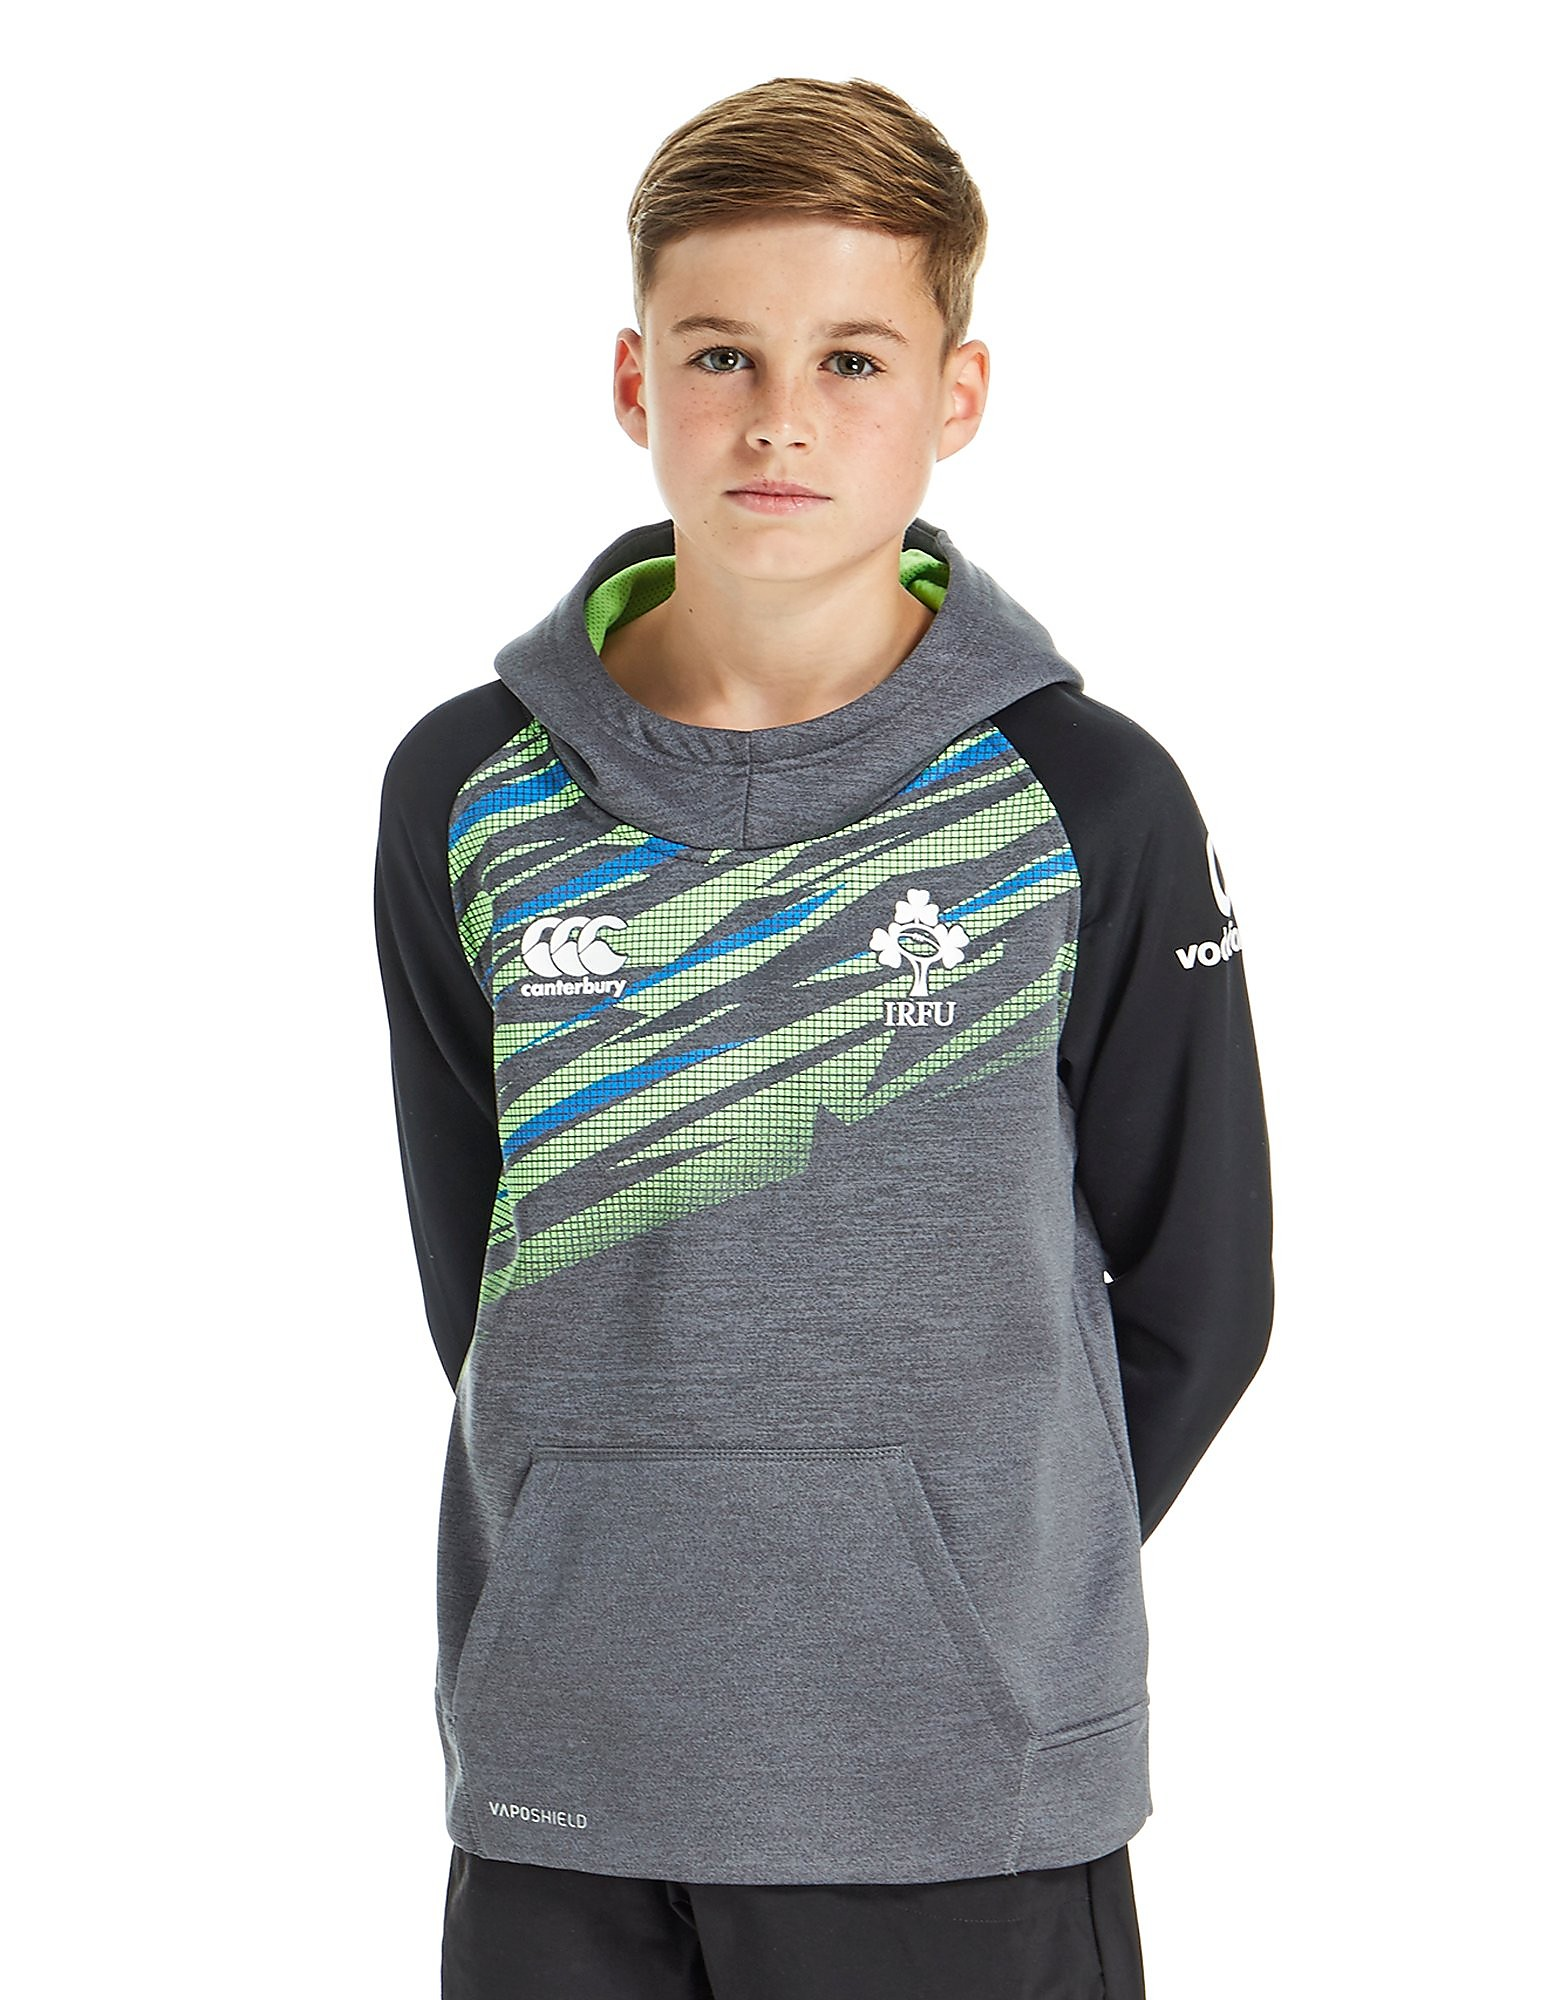 Canterbury Ireland RFU Hoody Junior